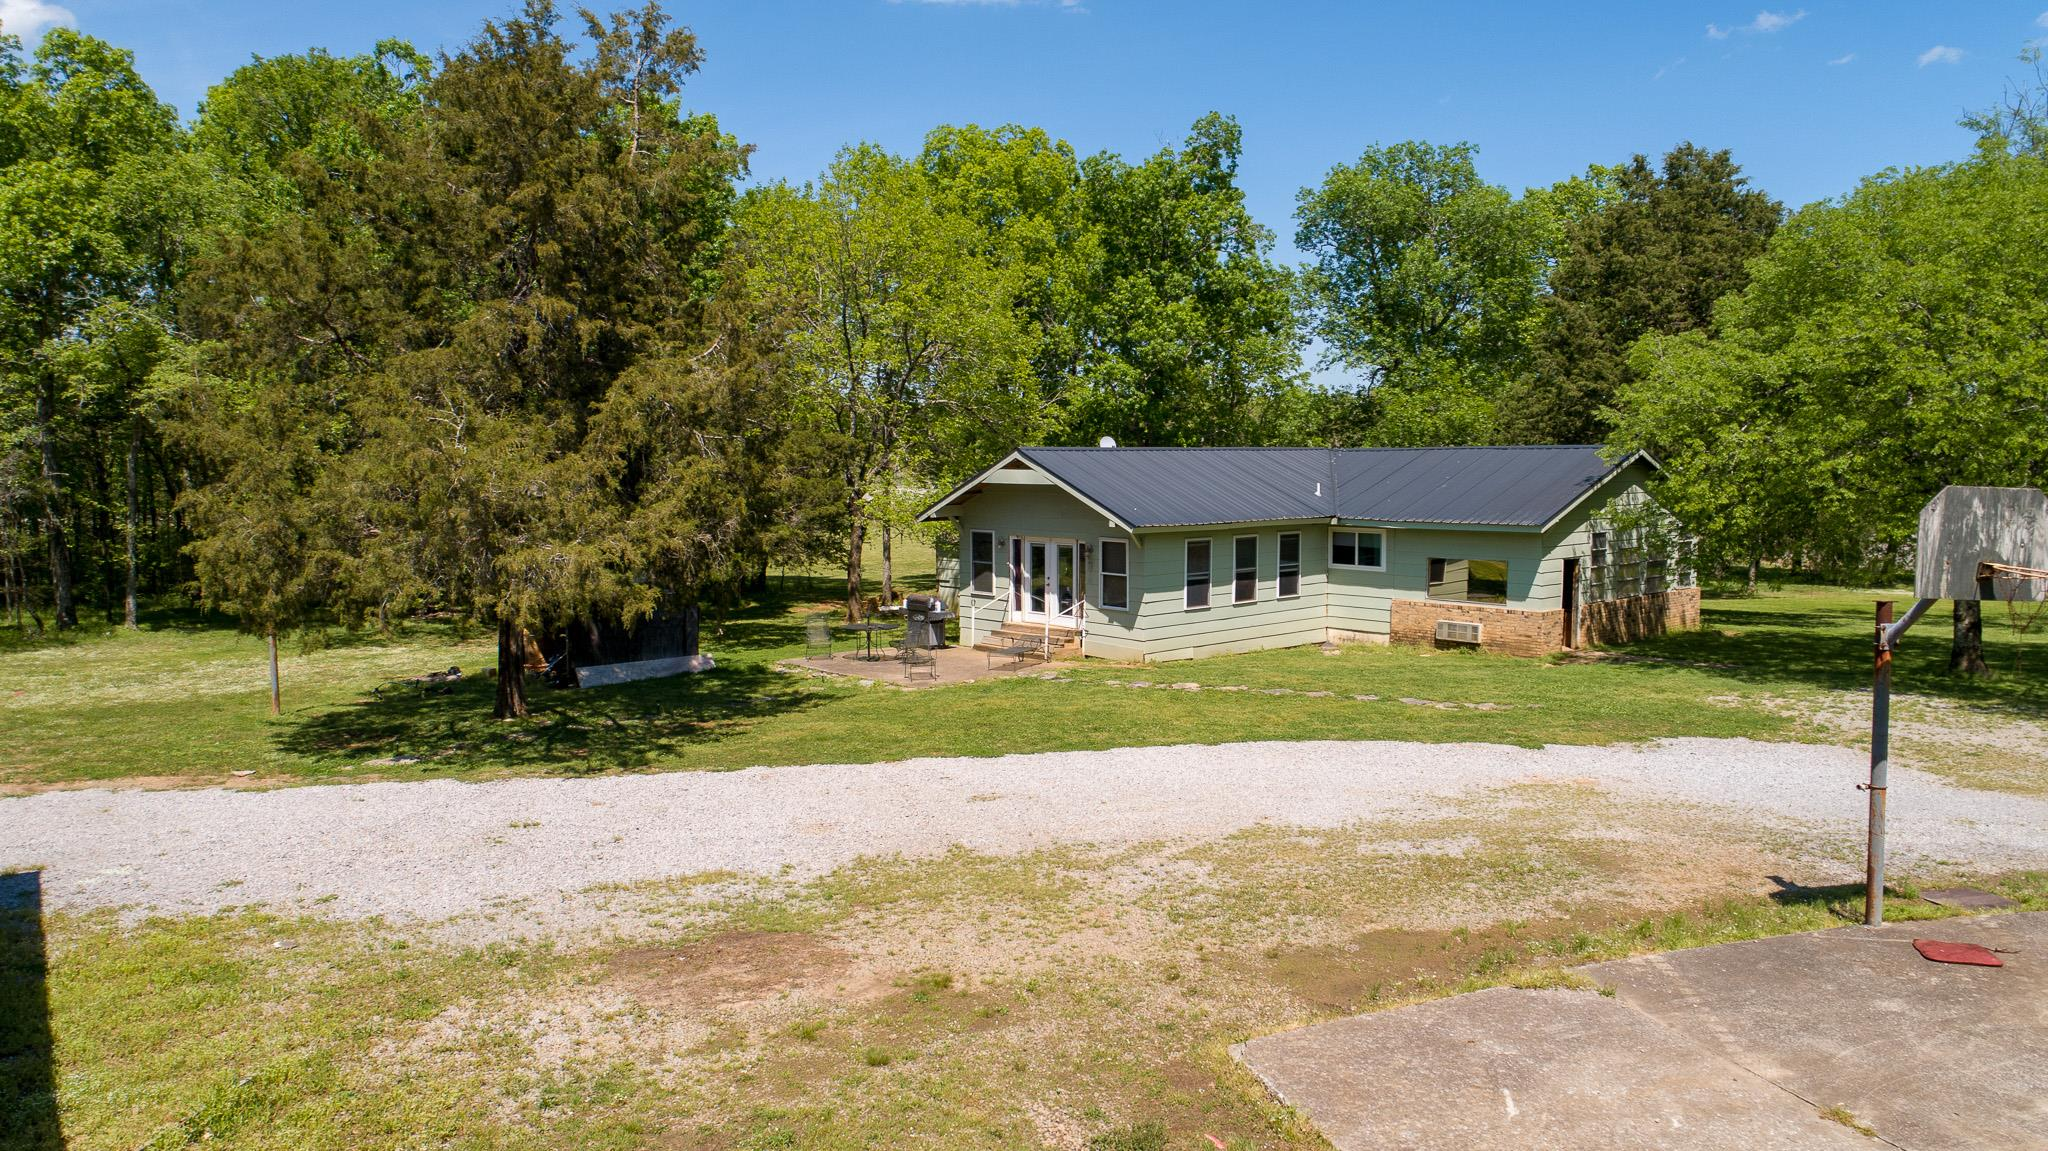 0 W Bill France Blvd, Murfreesboro, TN 37129 - Murfreesboro, TN real estate listing